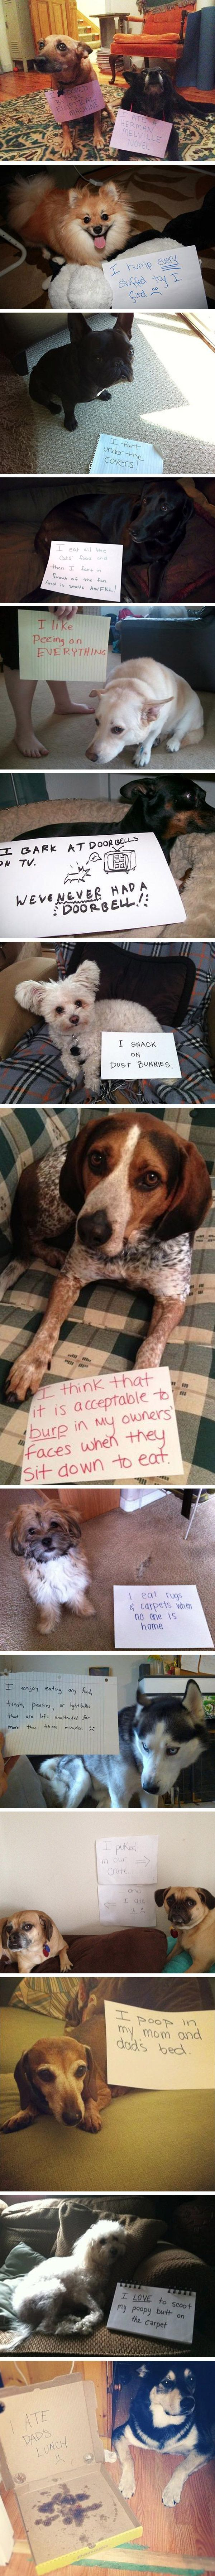 I can't get enough of these dog shames